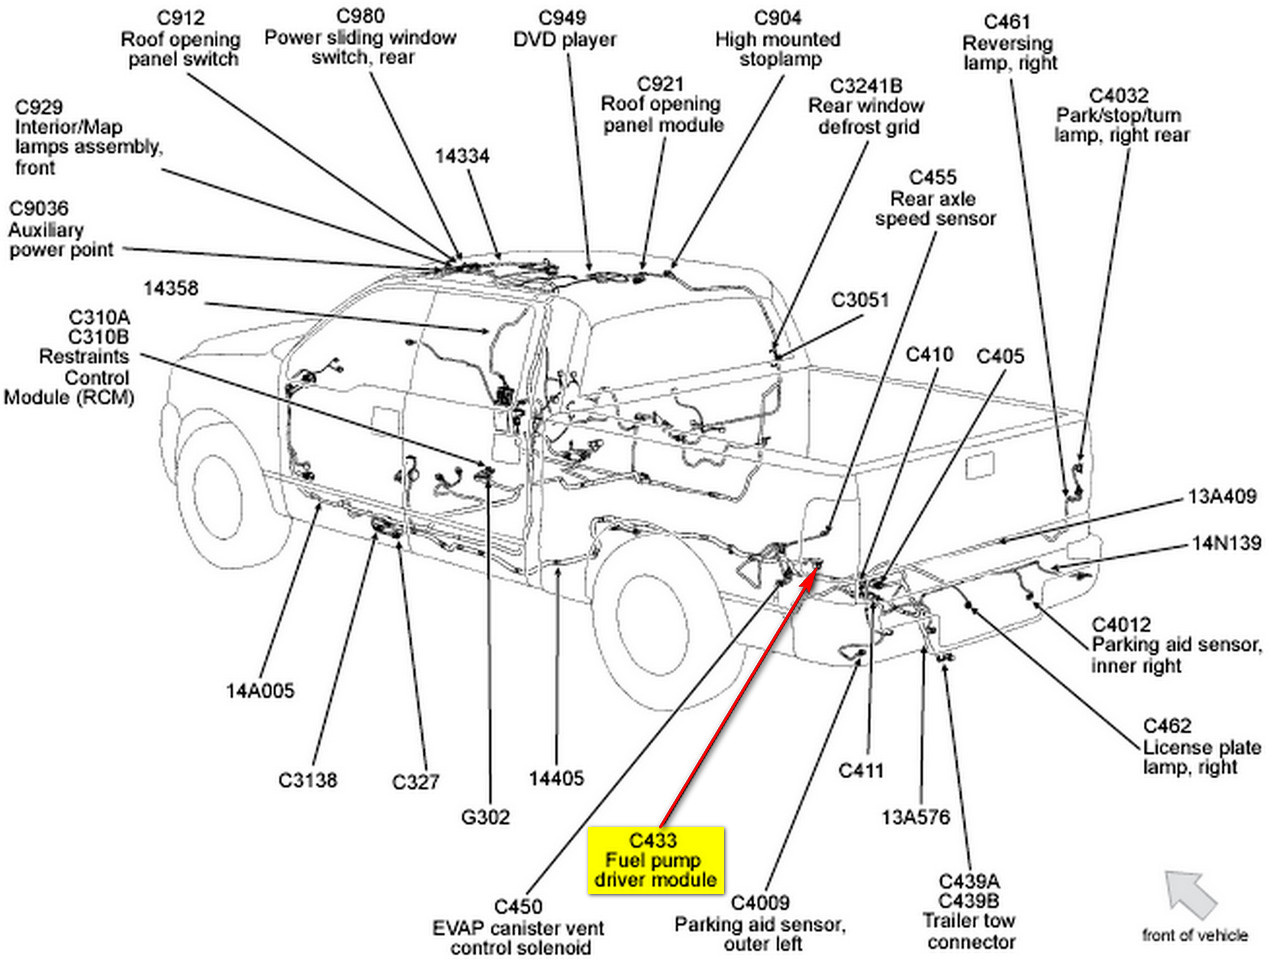 hight resolution of 1997 ford f150 fuel system diagram wiring diagram show 1997 ford f150 fuel system diagram 1997 ford f 150 fuel system diagram